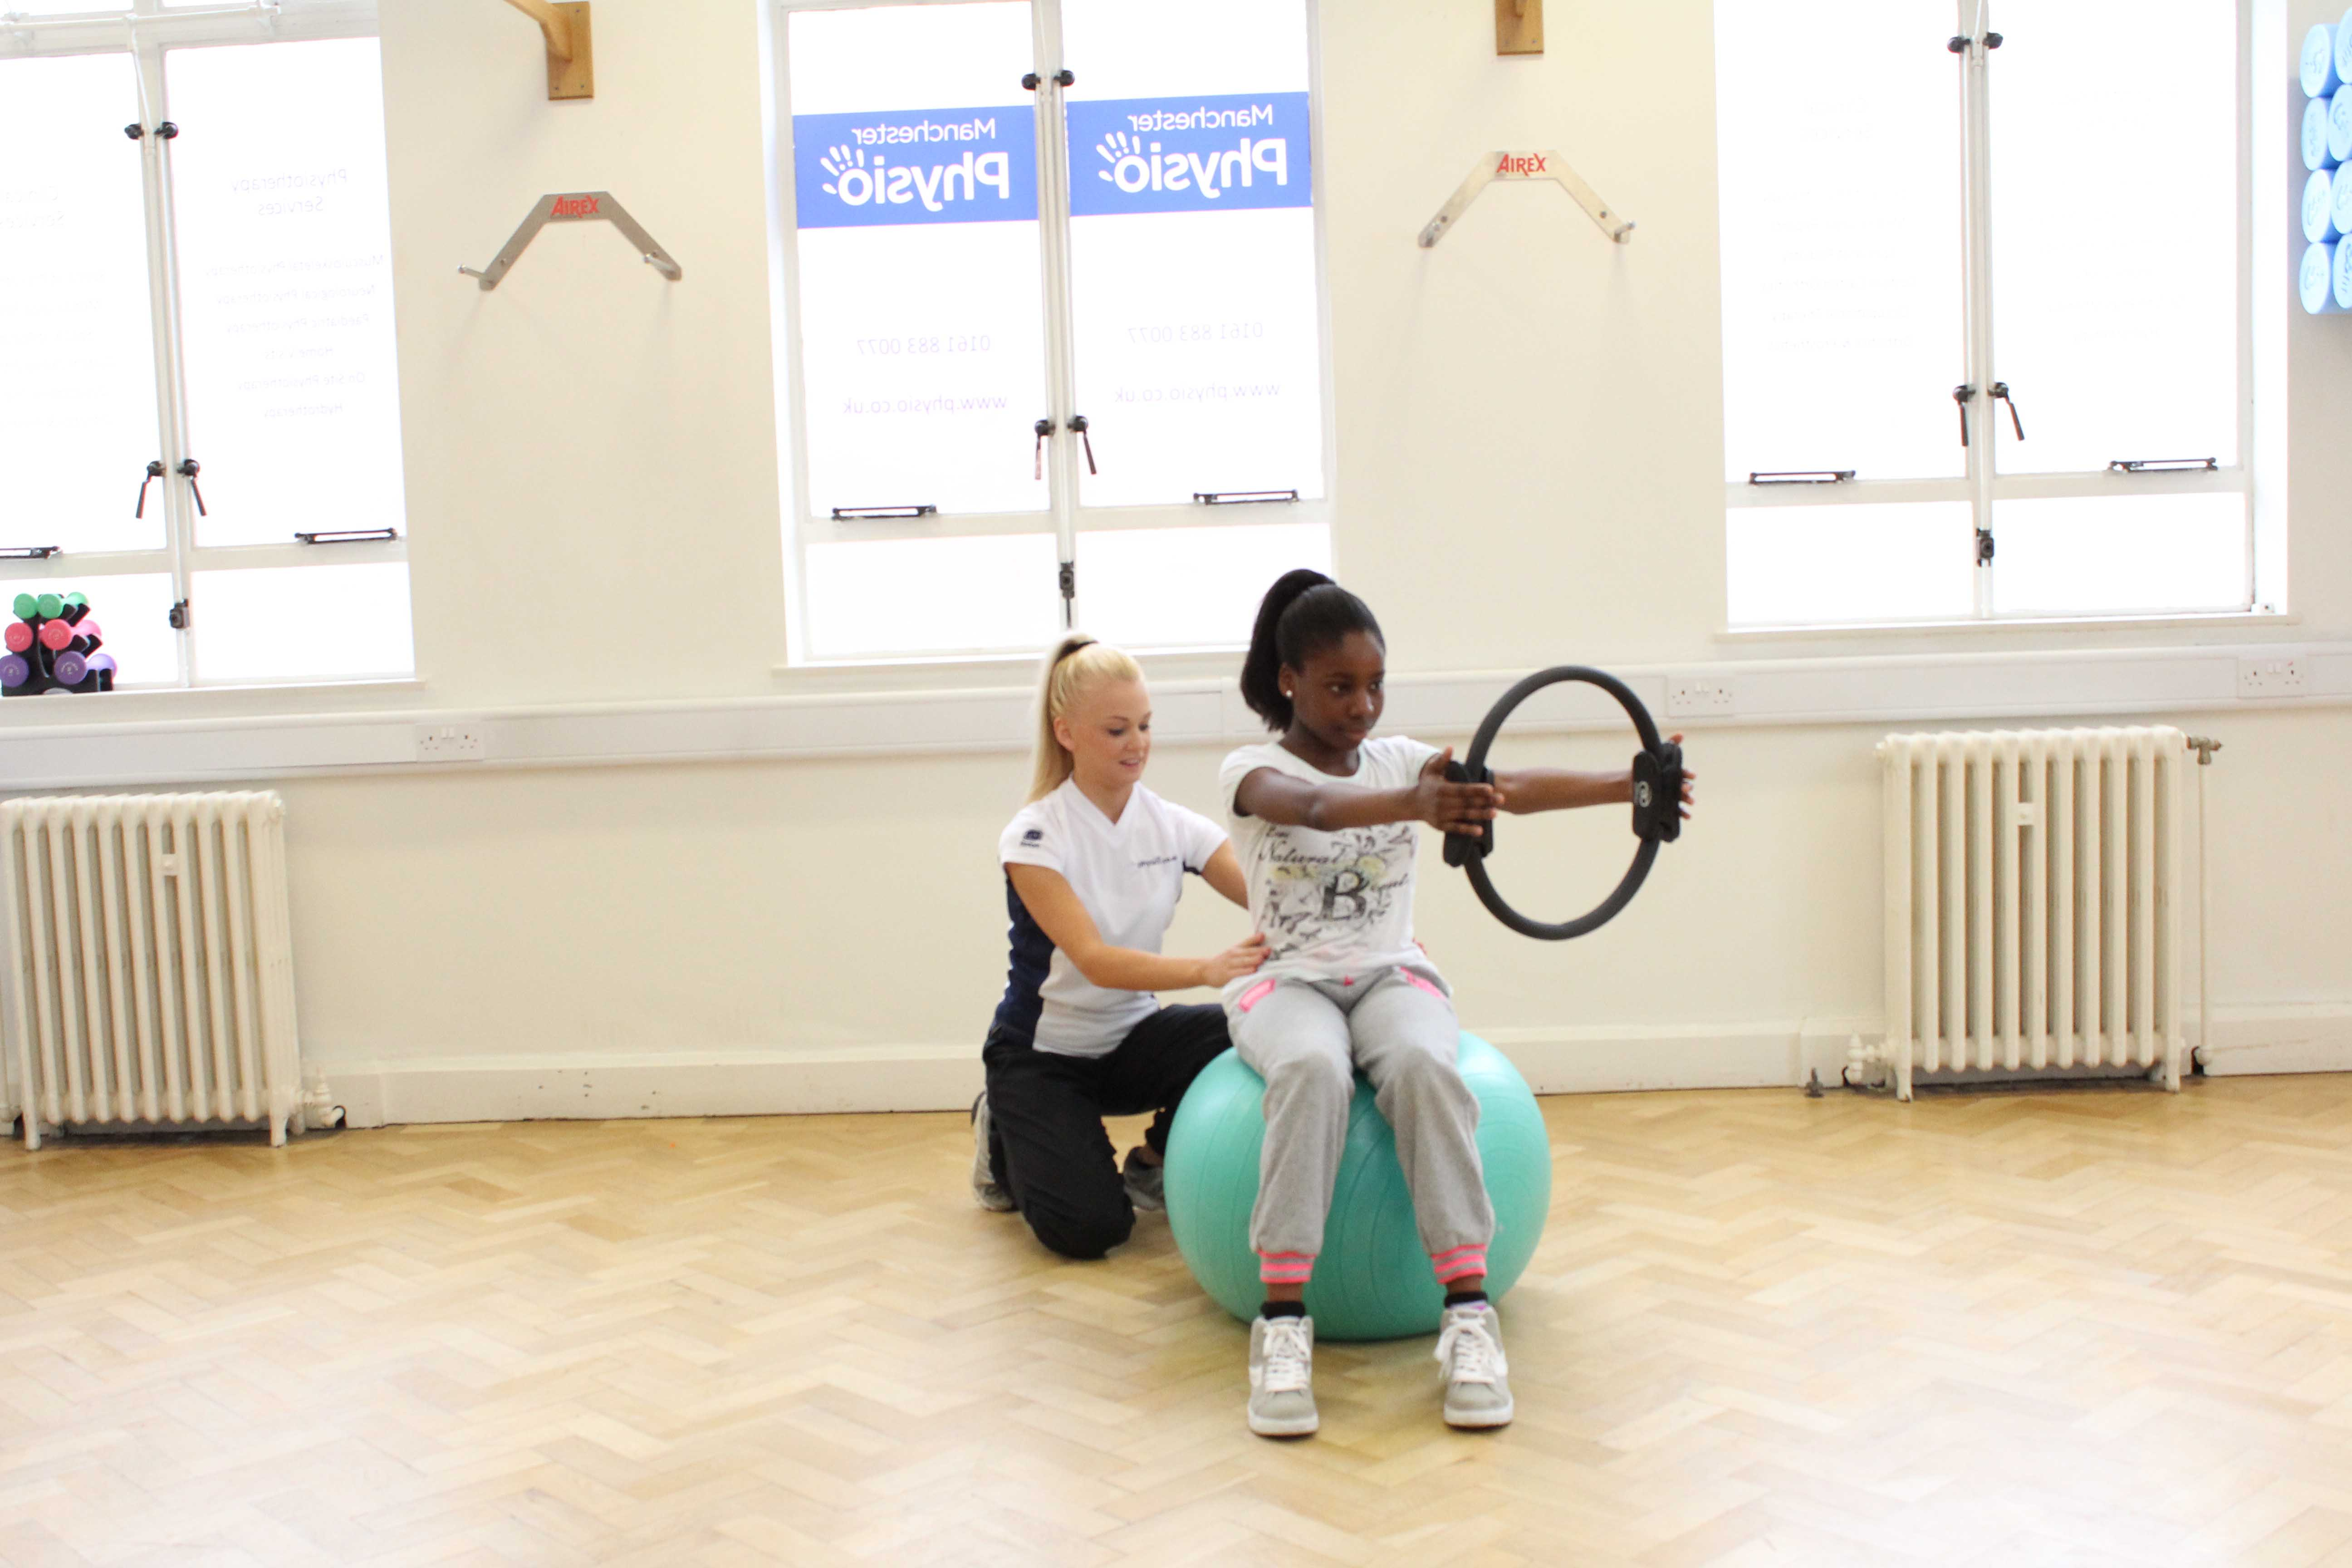 Core stability and stretching exercises supervised by a paediatric physiotherapist